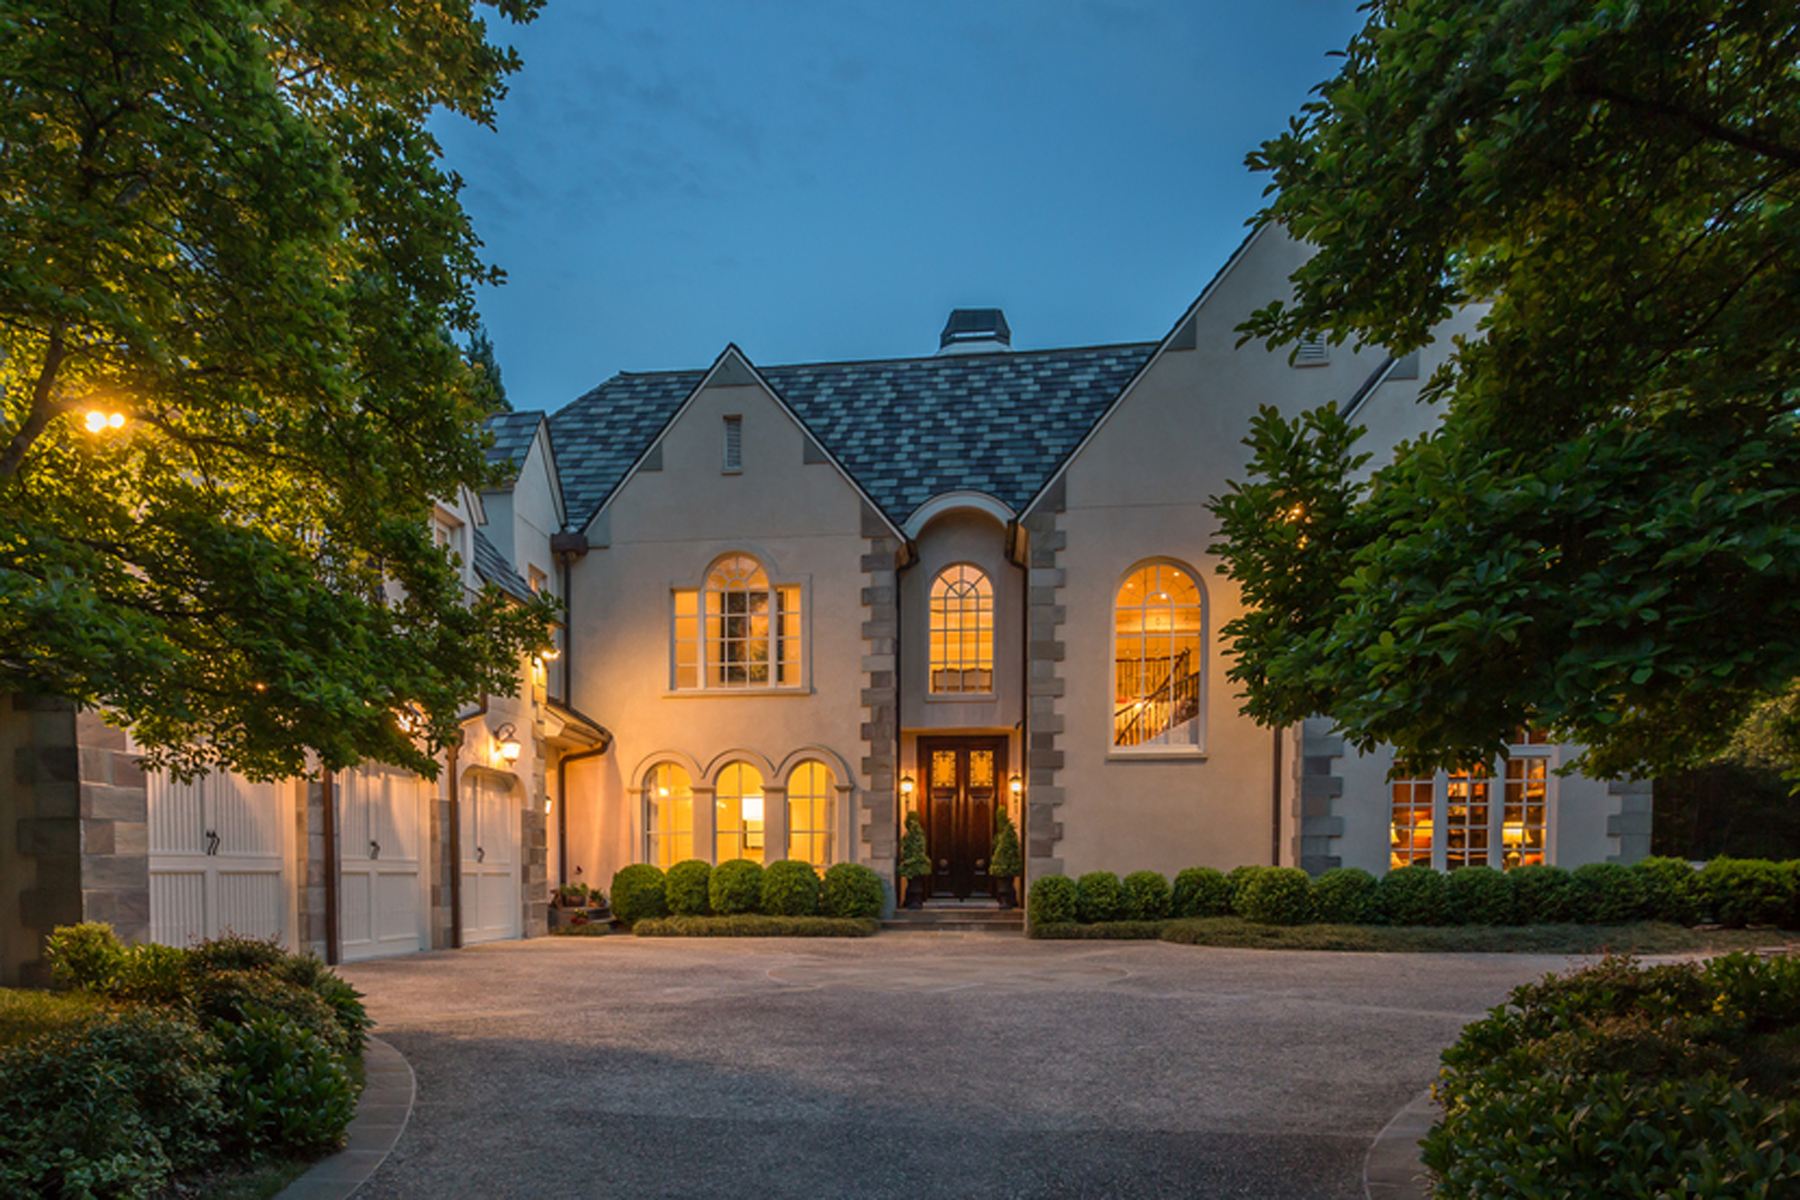 一戸建て のために 売買 アット Elegant And Private Buckhead Estate In Quiet Neighborhood 3915 The Highlands Buckhead, Atlanta, ジョージア, 30327 アメリカ合衆国